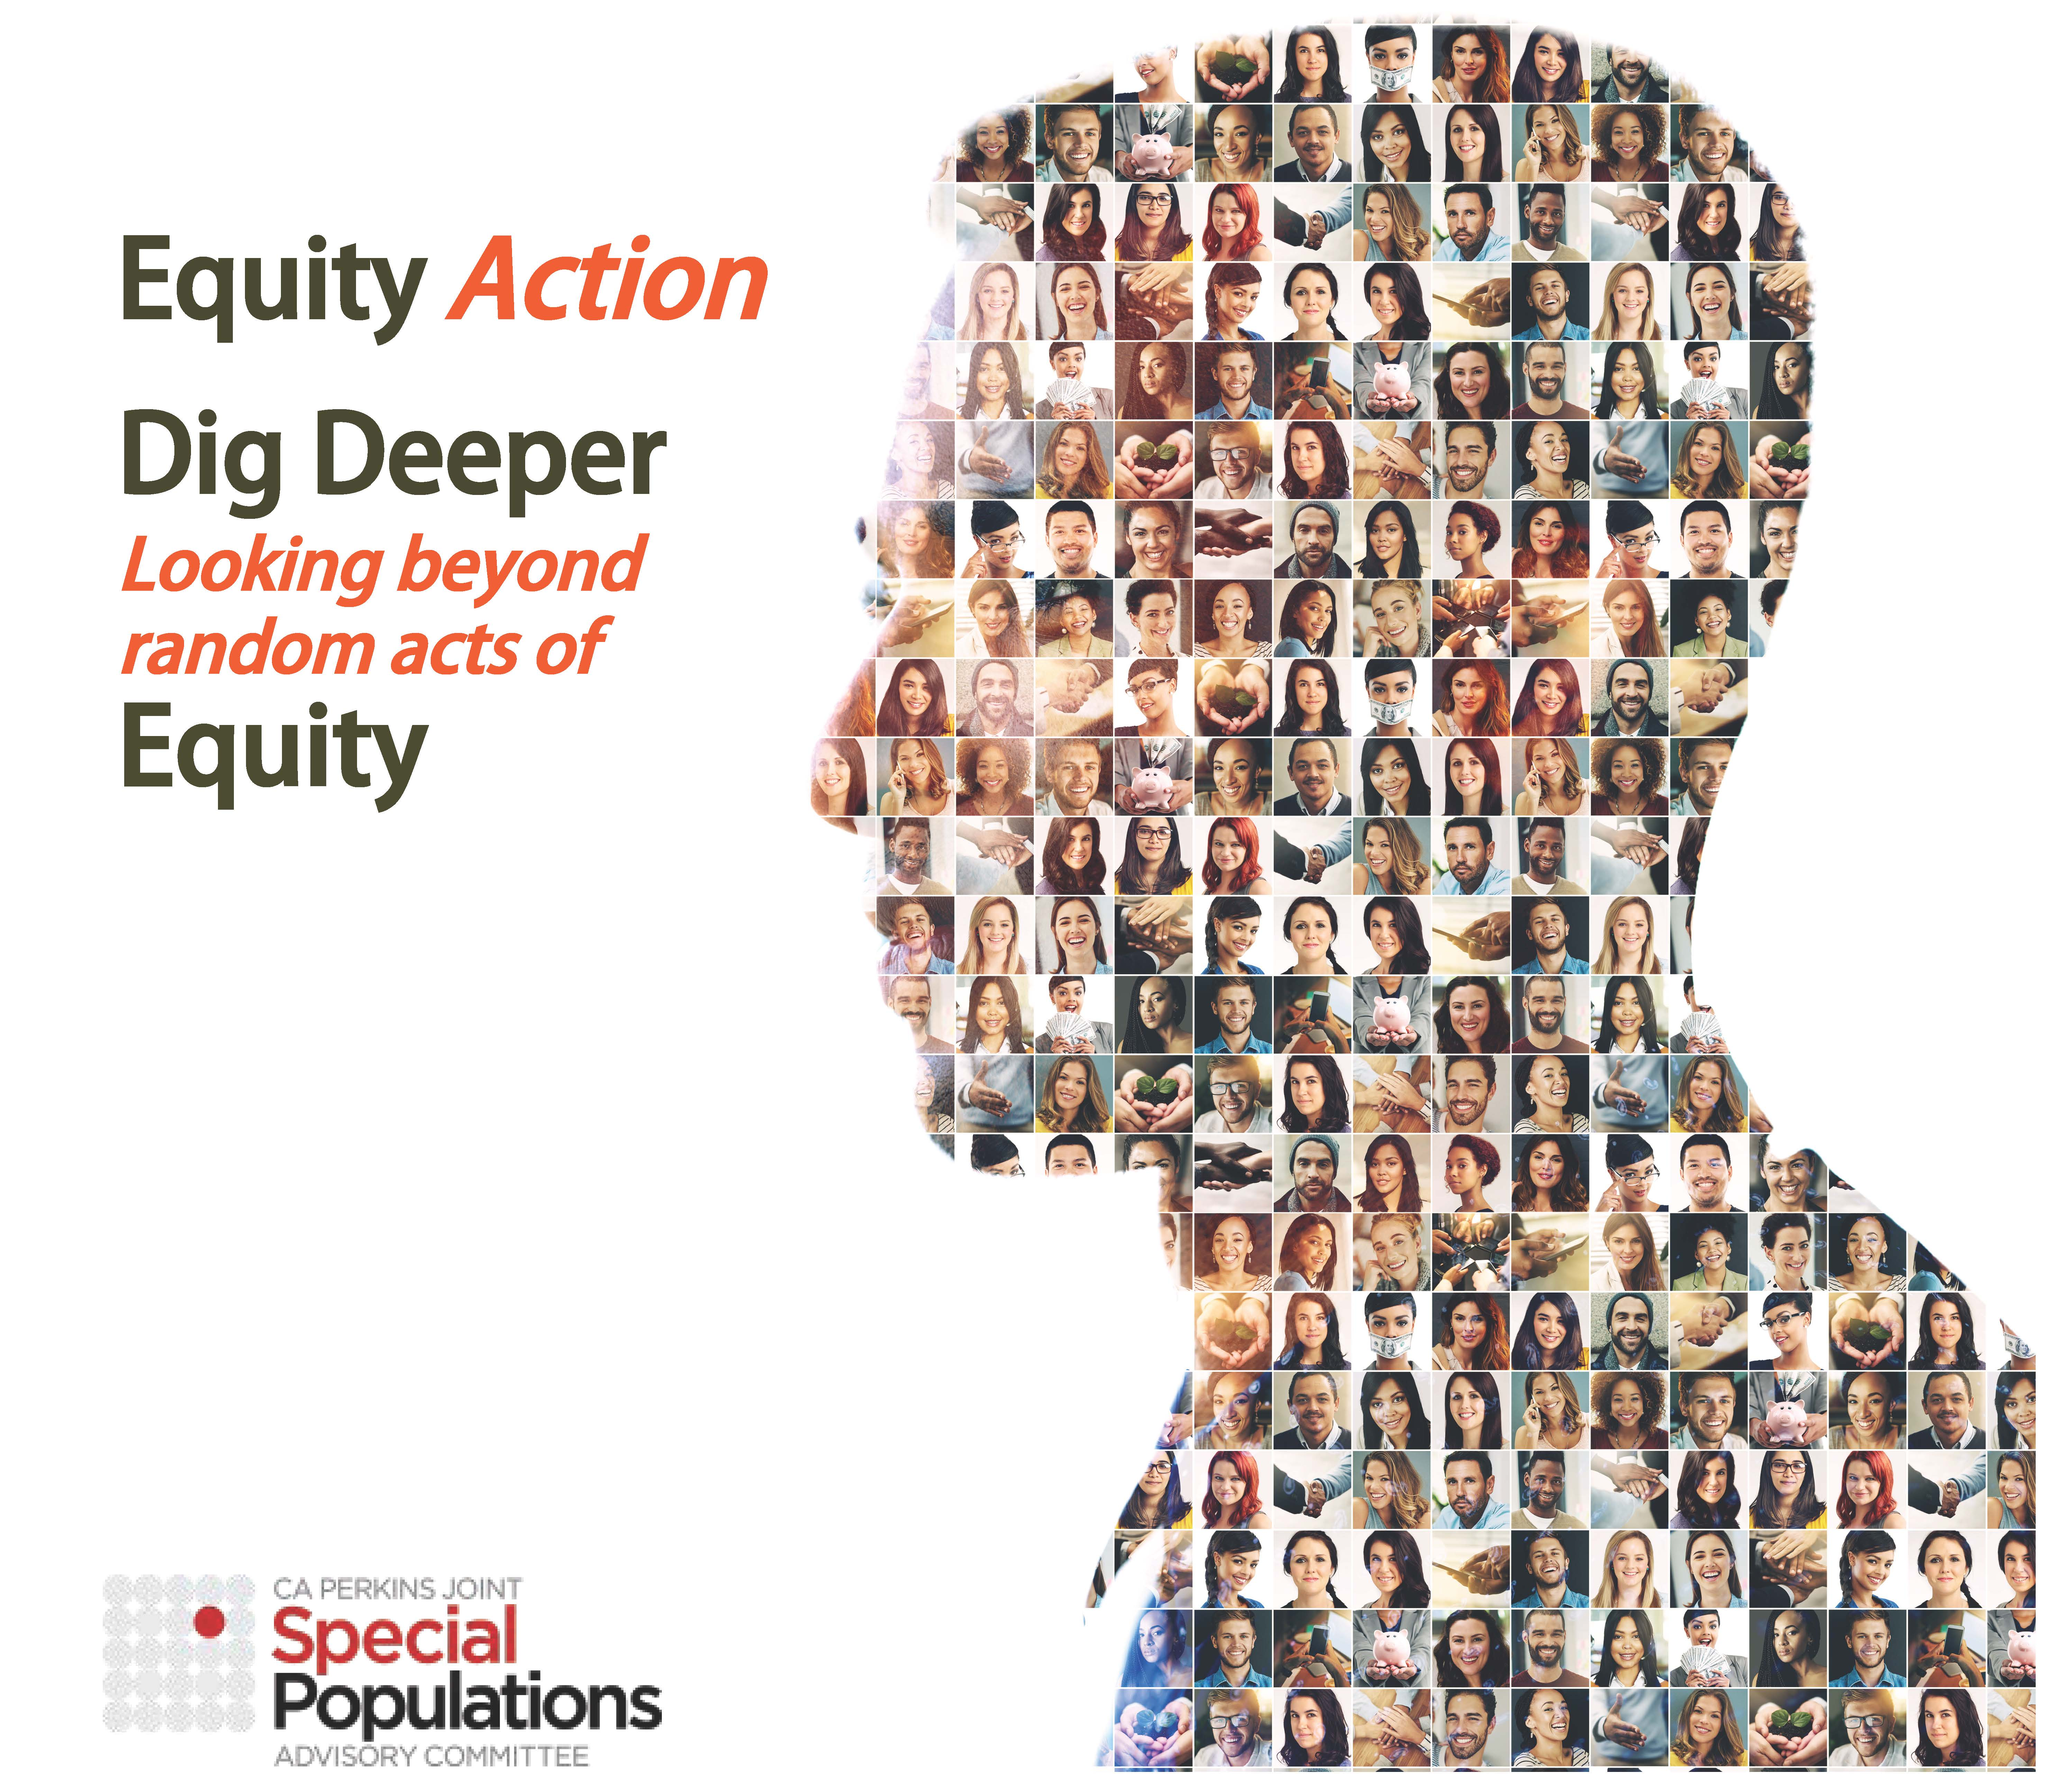 Equity Annual Conference Dig Deeper 2019